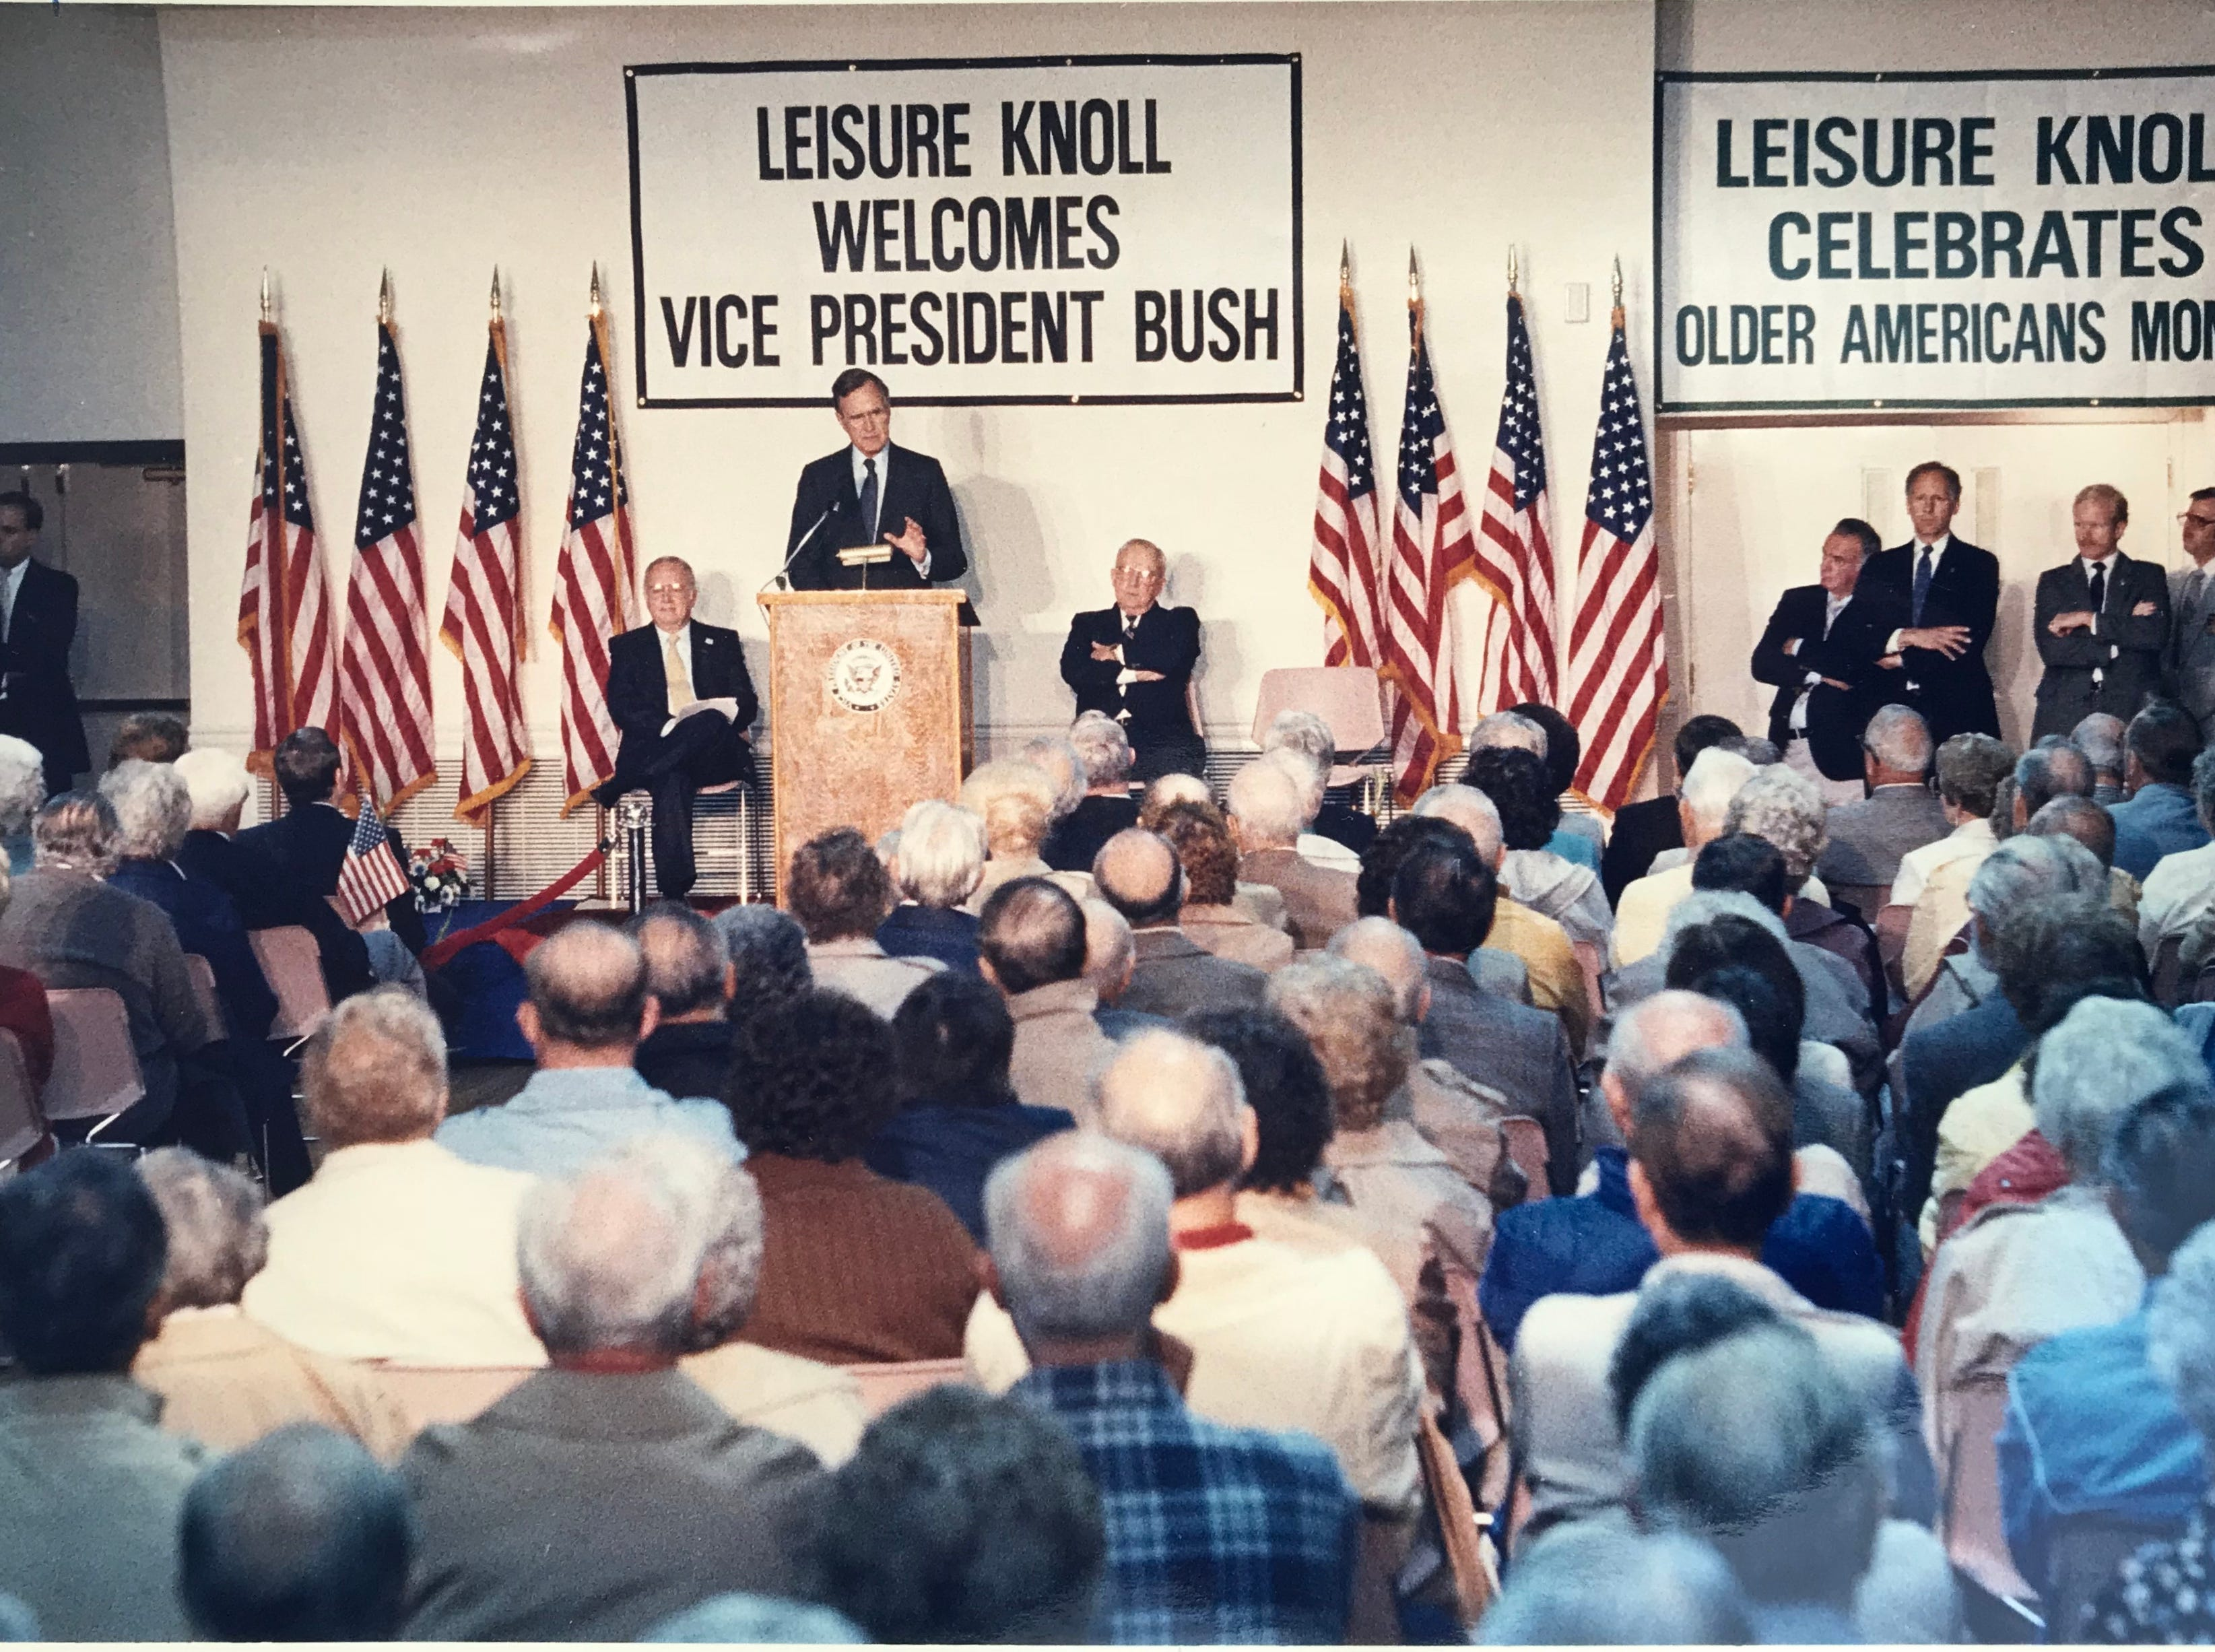 Vice President George H.W. Bush delivers his remarks to senior citizens gathered at Leisure Knoll in Manchester Township on may 25, 1988.